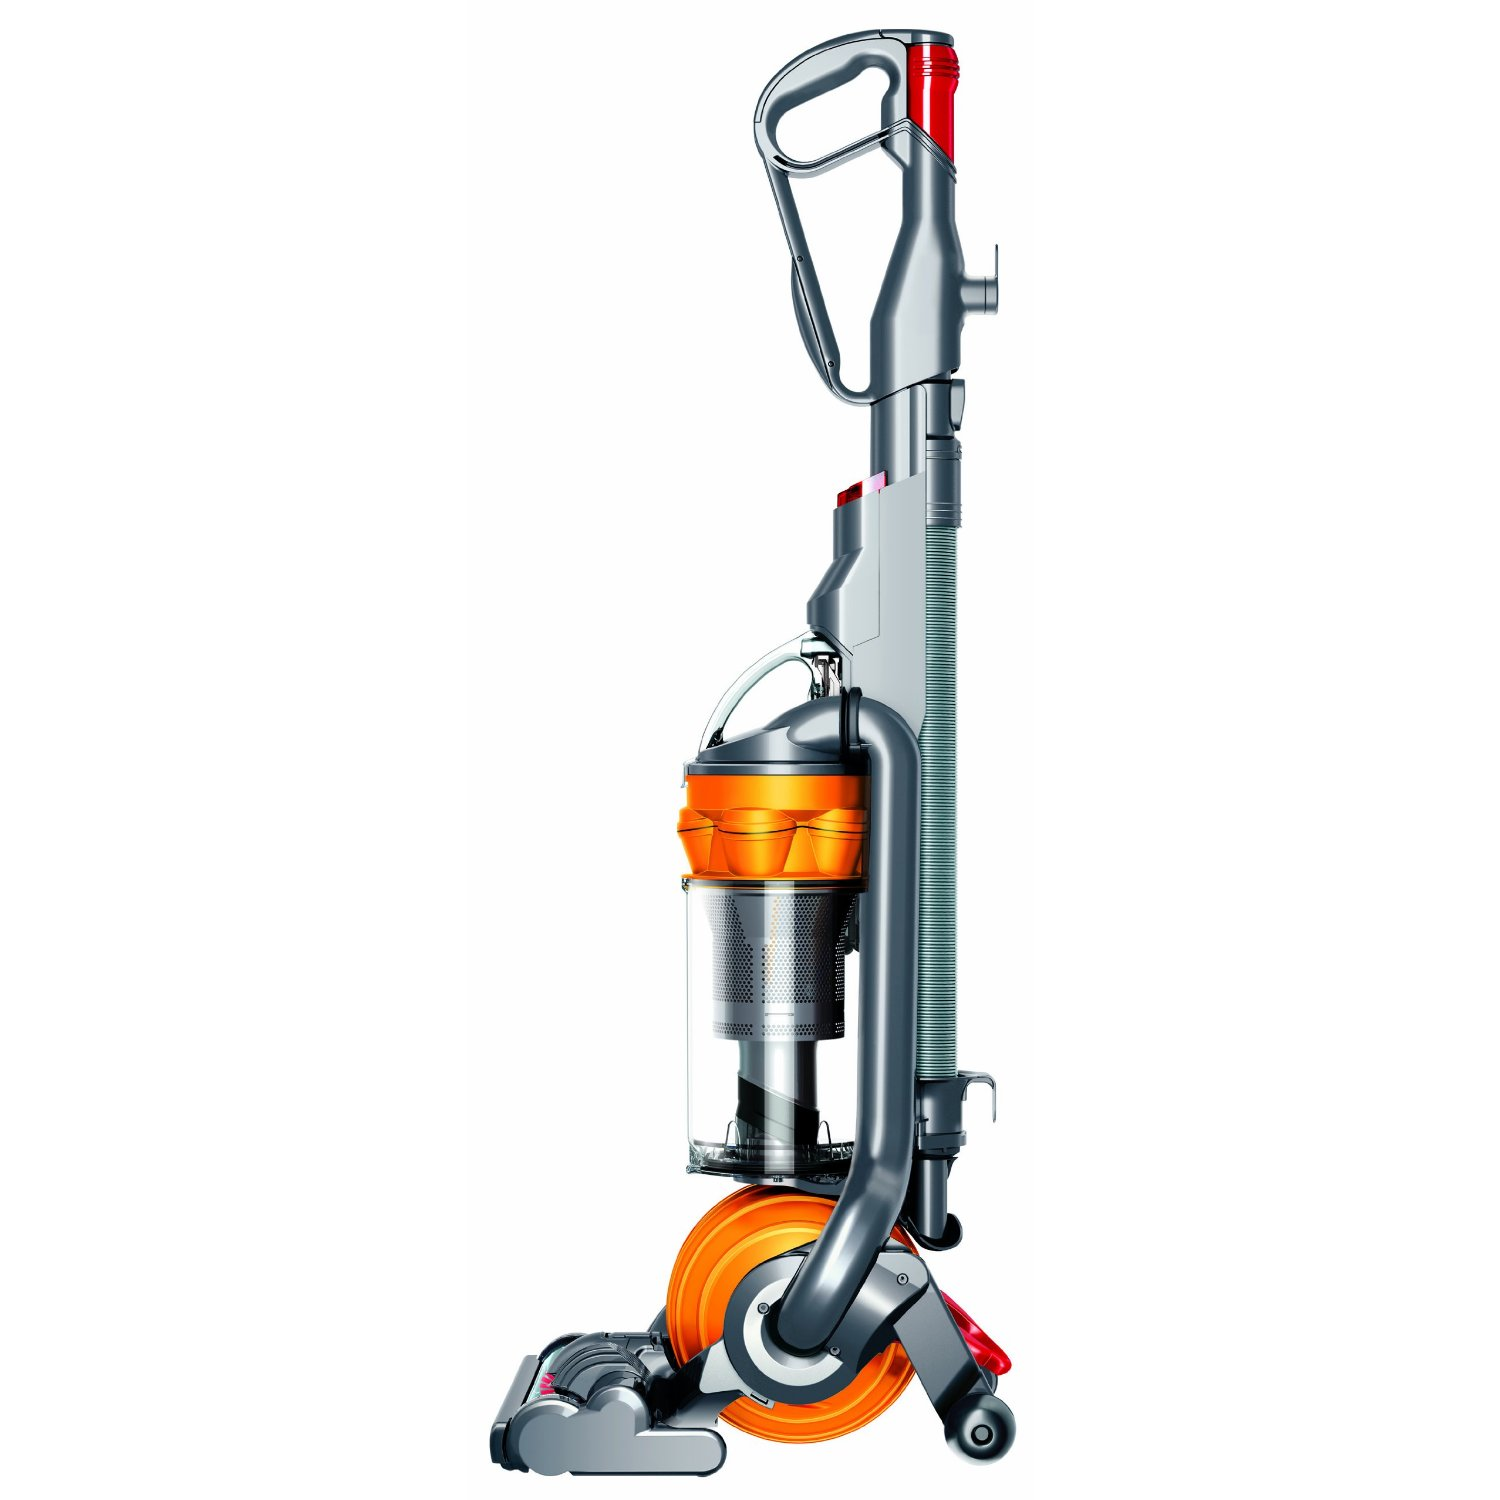 Dyson Dc25 Ball All Floors Upright Vacuum Cleaner 319 99